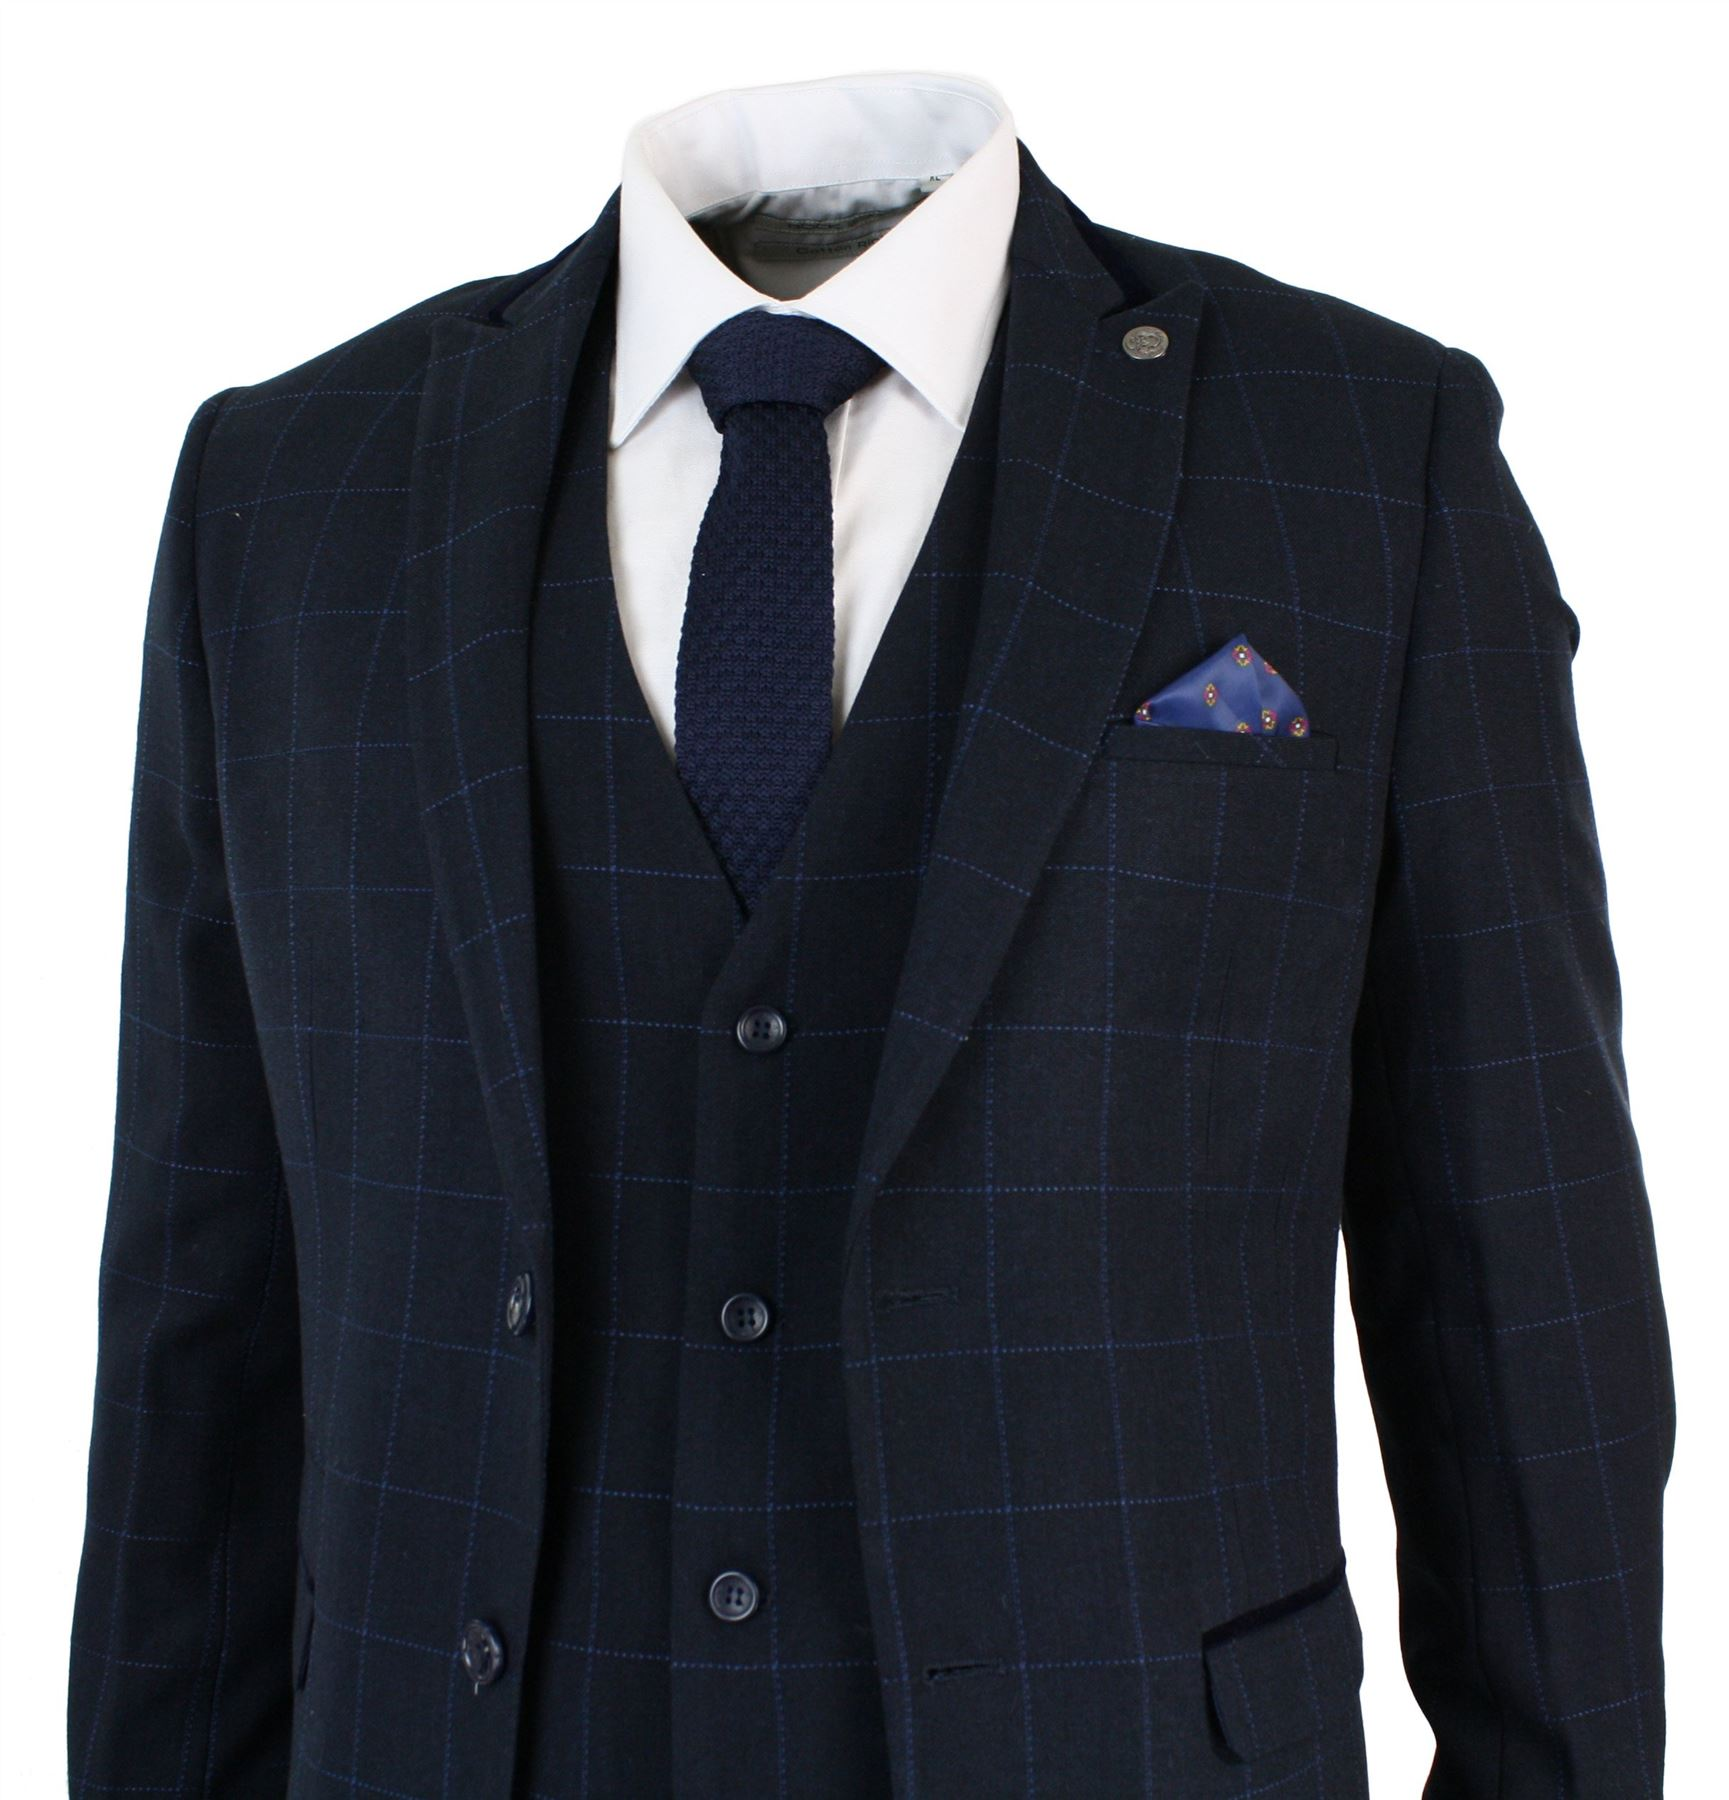 2ce9b5246a6 Mens Navy Blue Check Classic Tailored Fit Retro Check 3 Piece Smart ...